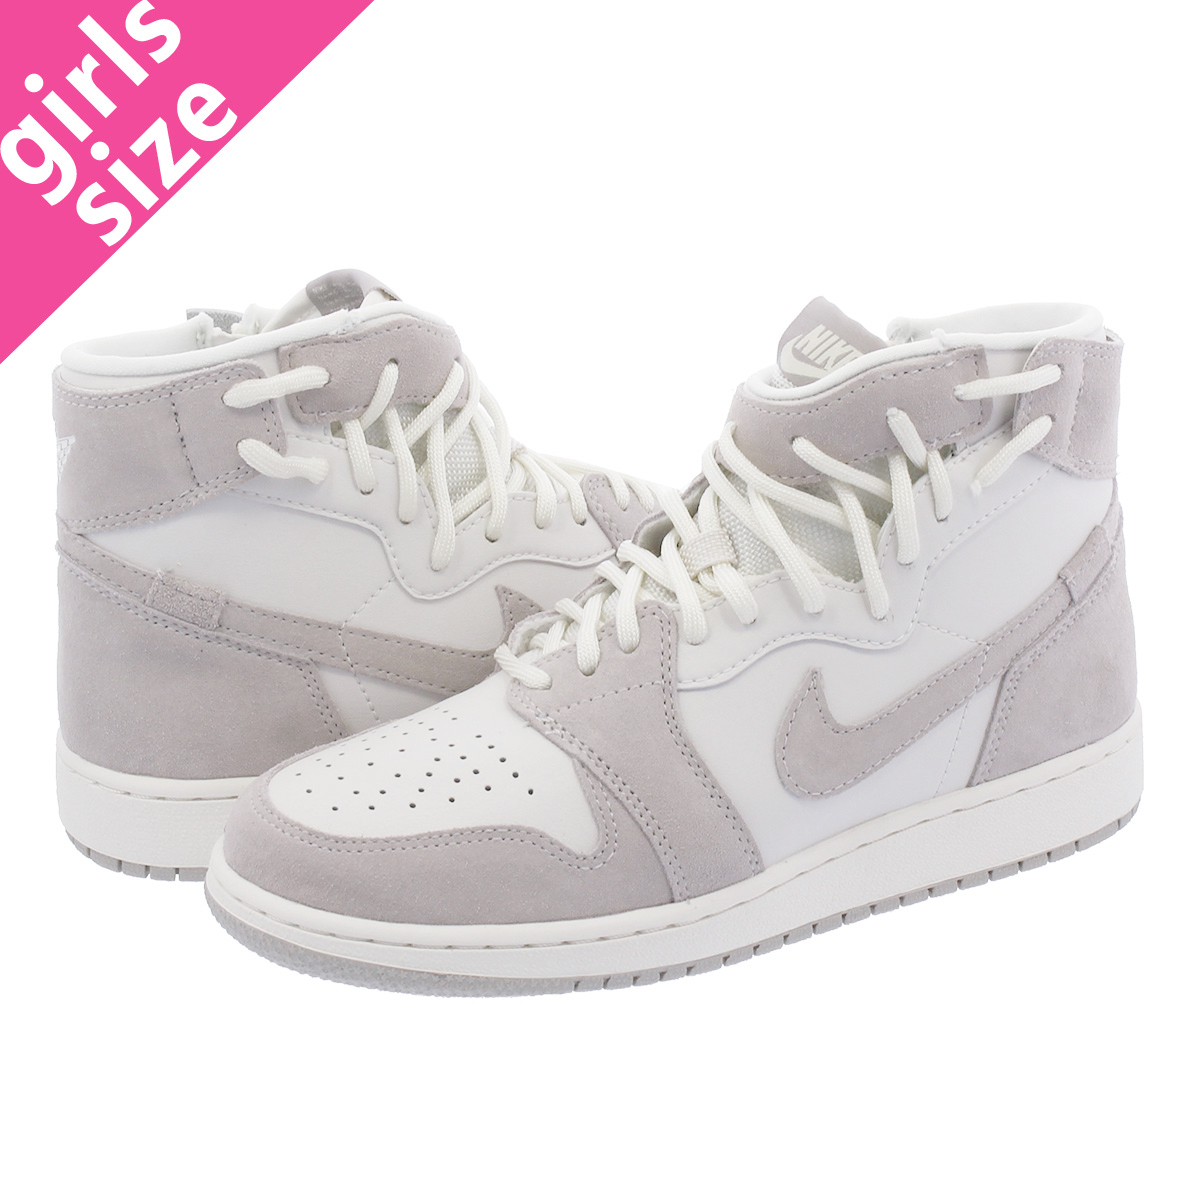 816a37e657cbe0 NIKE WMNS AIR JORDAN 1 REBEL XX Nike women Air Jordan 1 level XX REBEL XX  MOON PARTICLE MOON PARTICLE PHANTOM ar5599-200